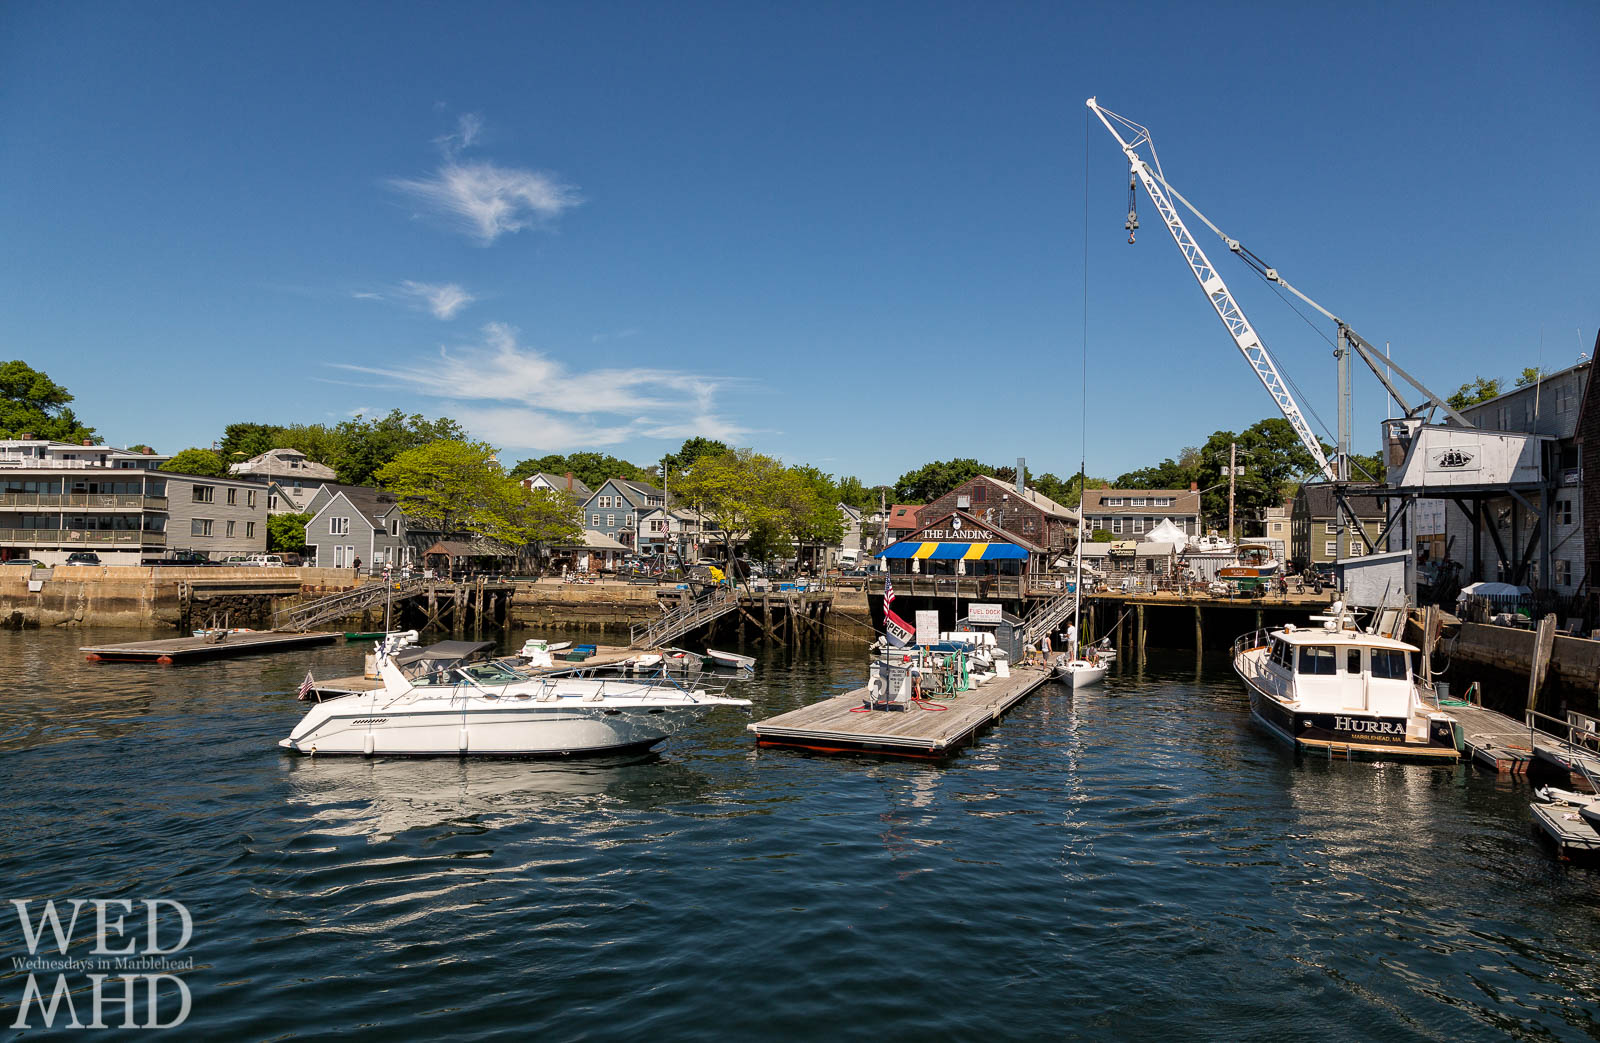 A view of The Landing restaurant in Marblehead seen from the water